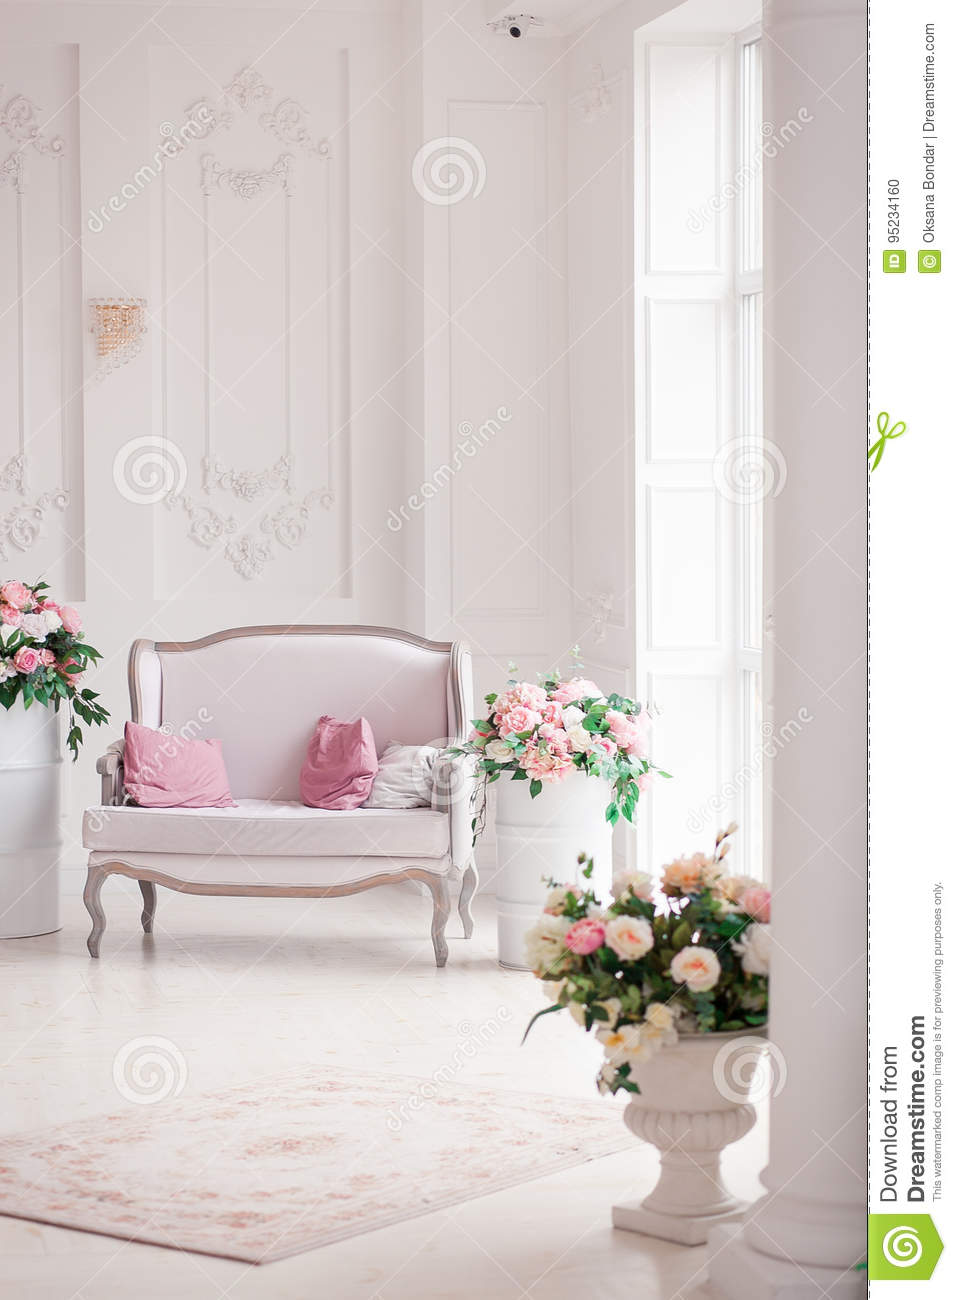 Download Interior Of A Snow White Living Room With A Vintage Sofa And  Flowers Stock